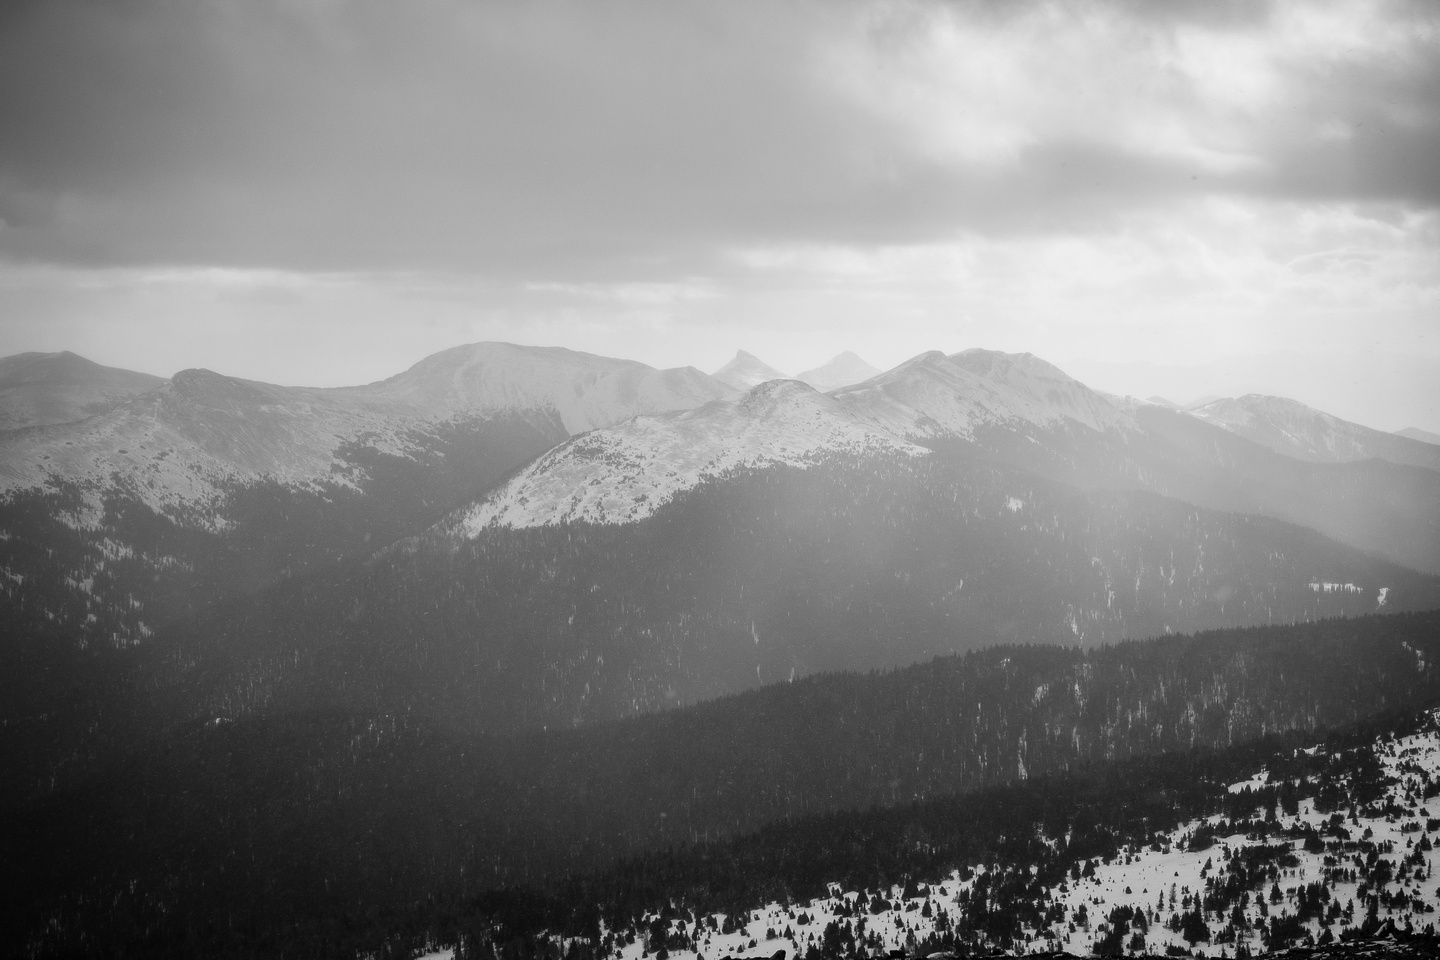 The only summit photo worth sharing - looking south towards Monad just left of center and Cabin Ridge (Twin Peaks) just right of center in the far distance.